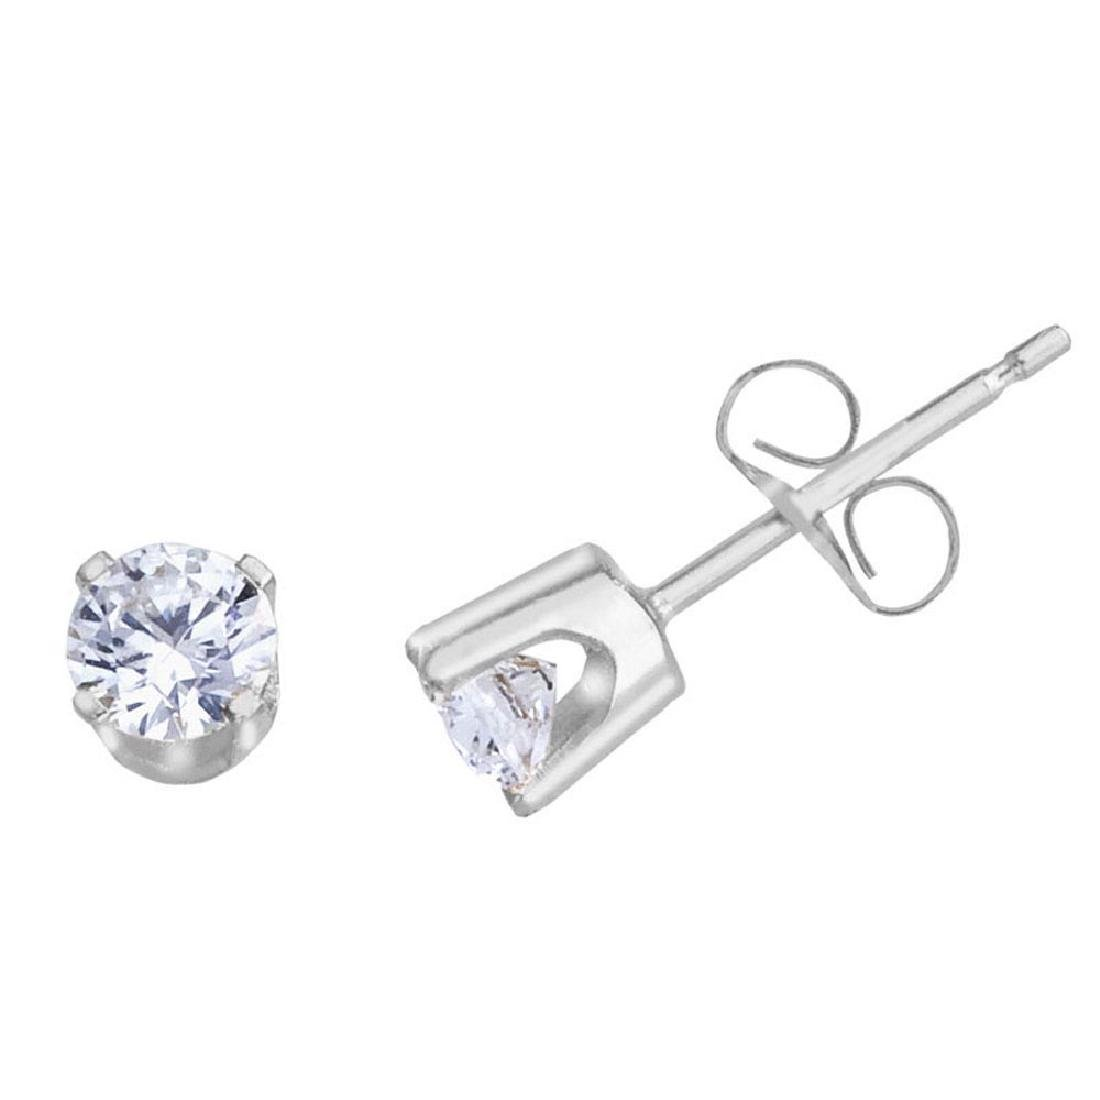 Certified 14k White Gold 0.40 Ct Diamond Stud Earrings